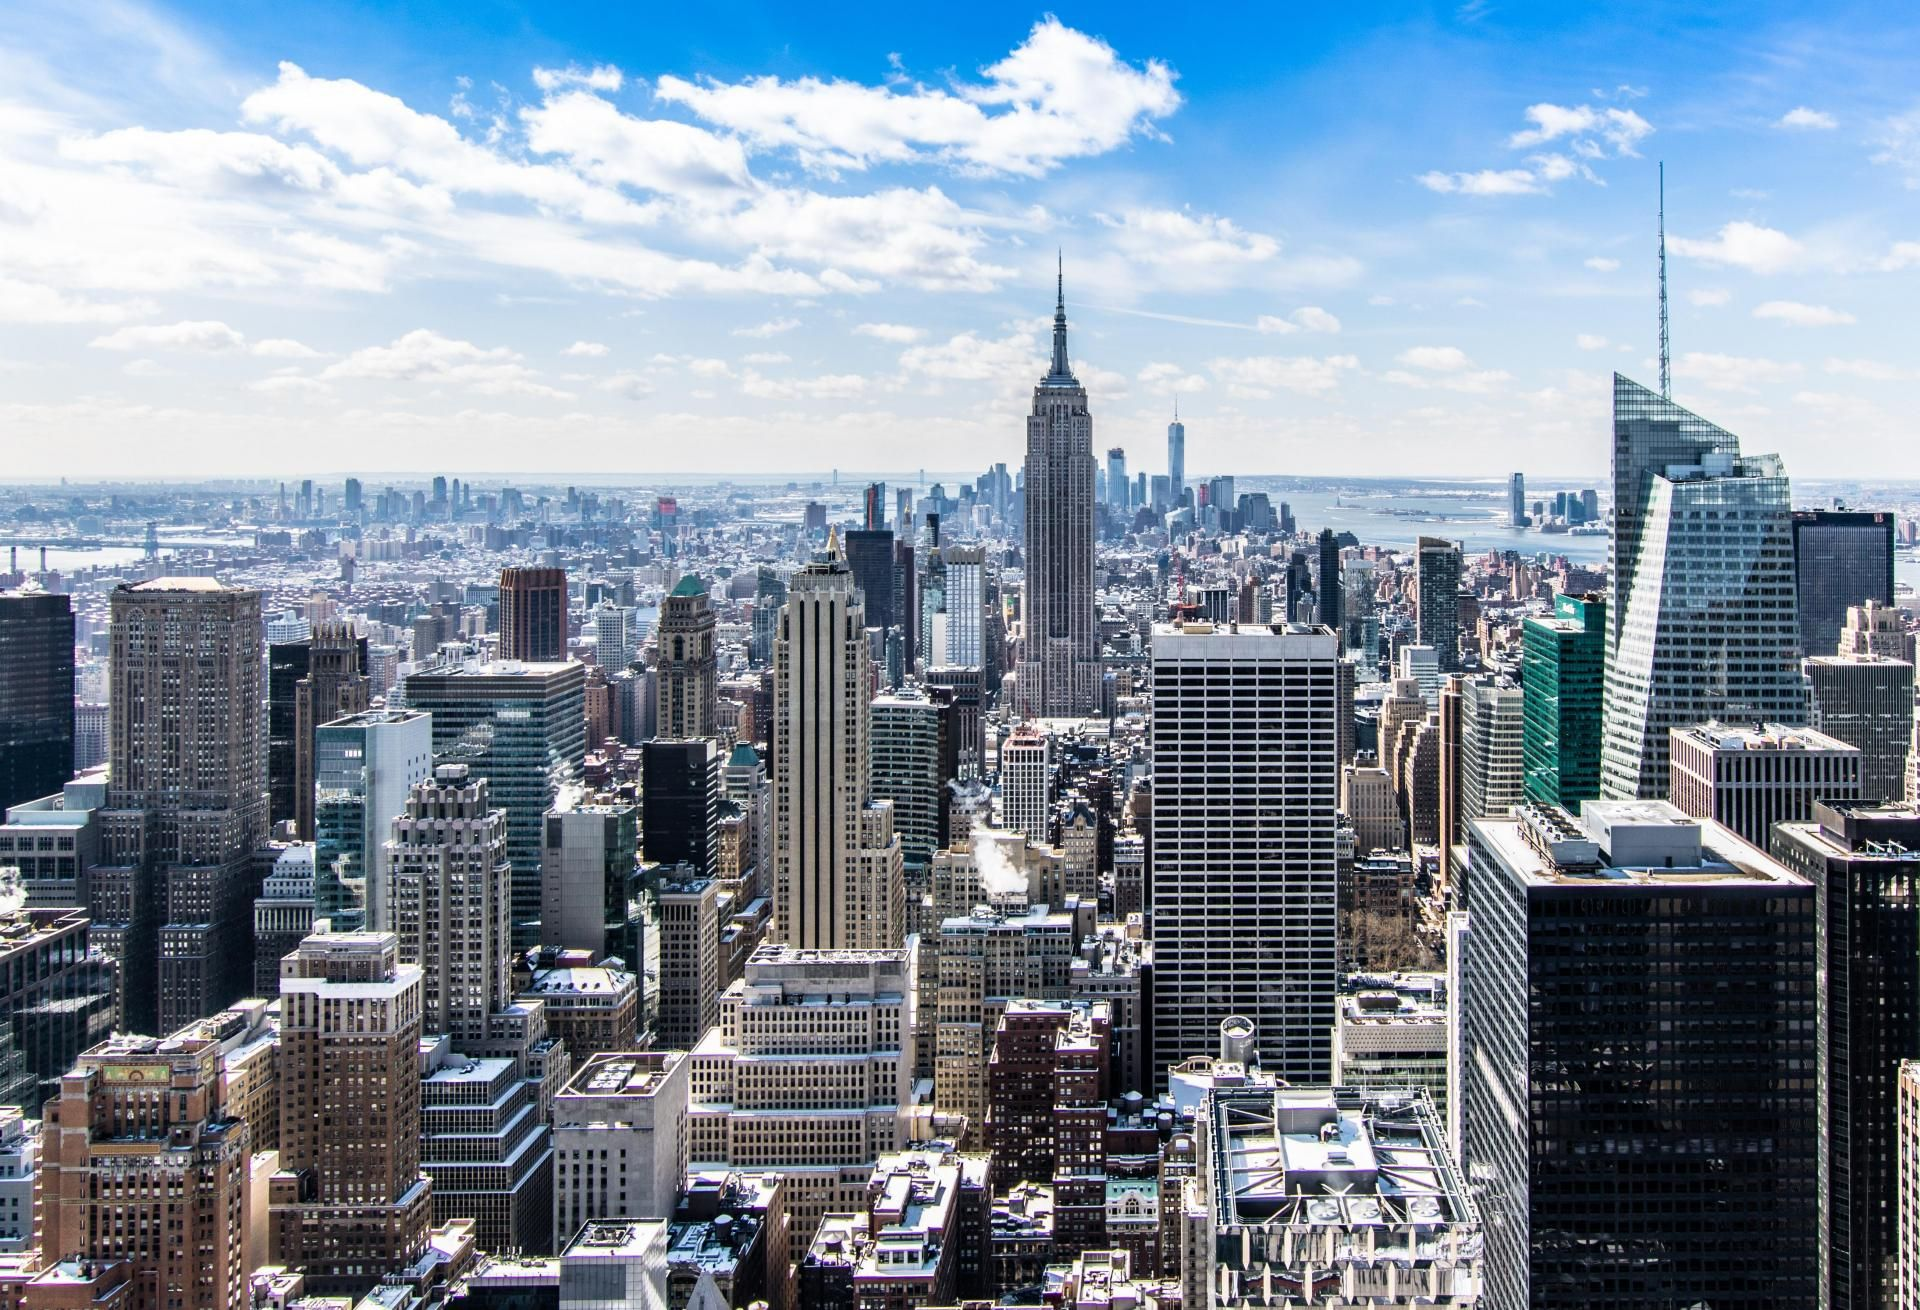 NYC Investment Sales Fell Nearly 80% In Q2